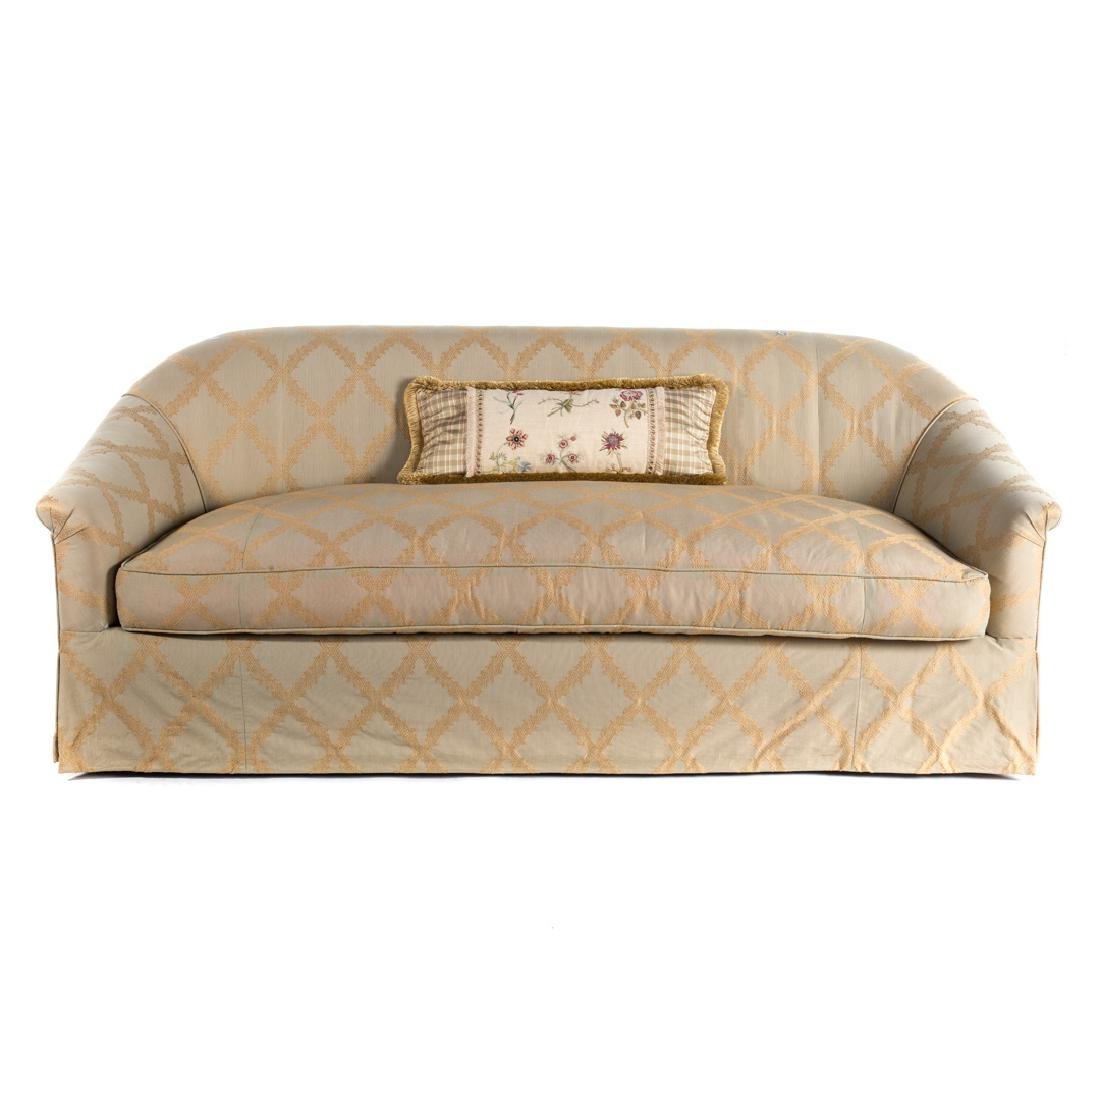 Pair R. Jones Contemporary upholstered sofas - 2